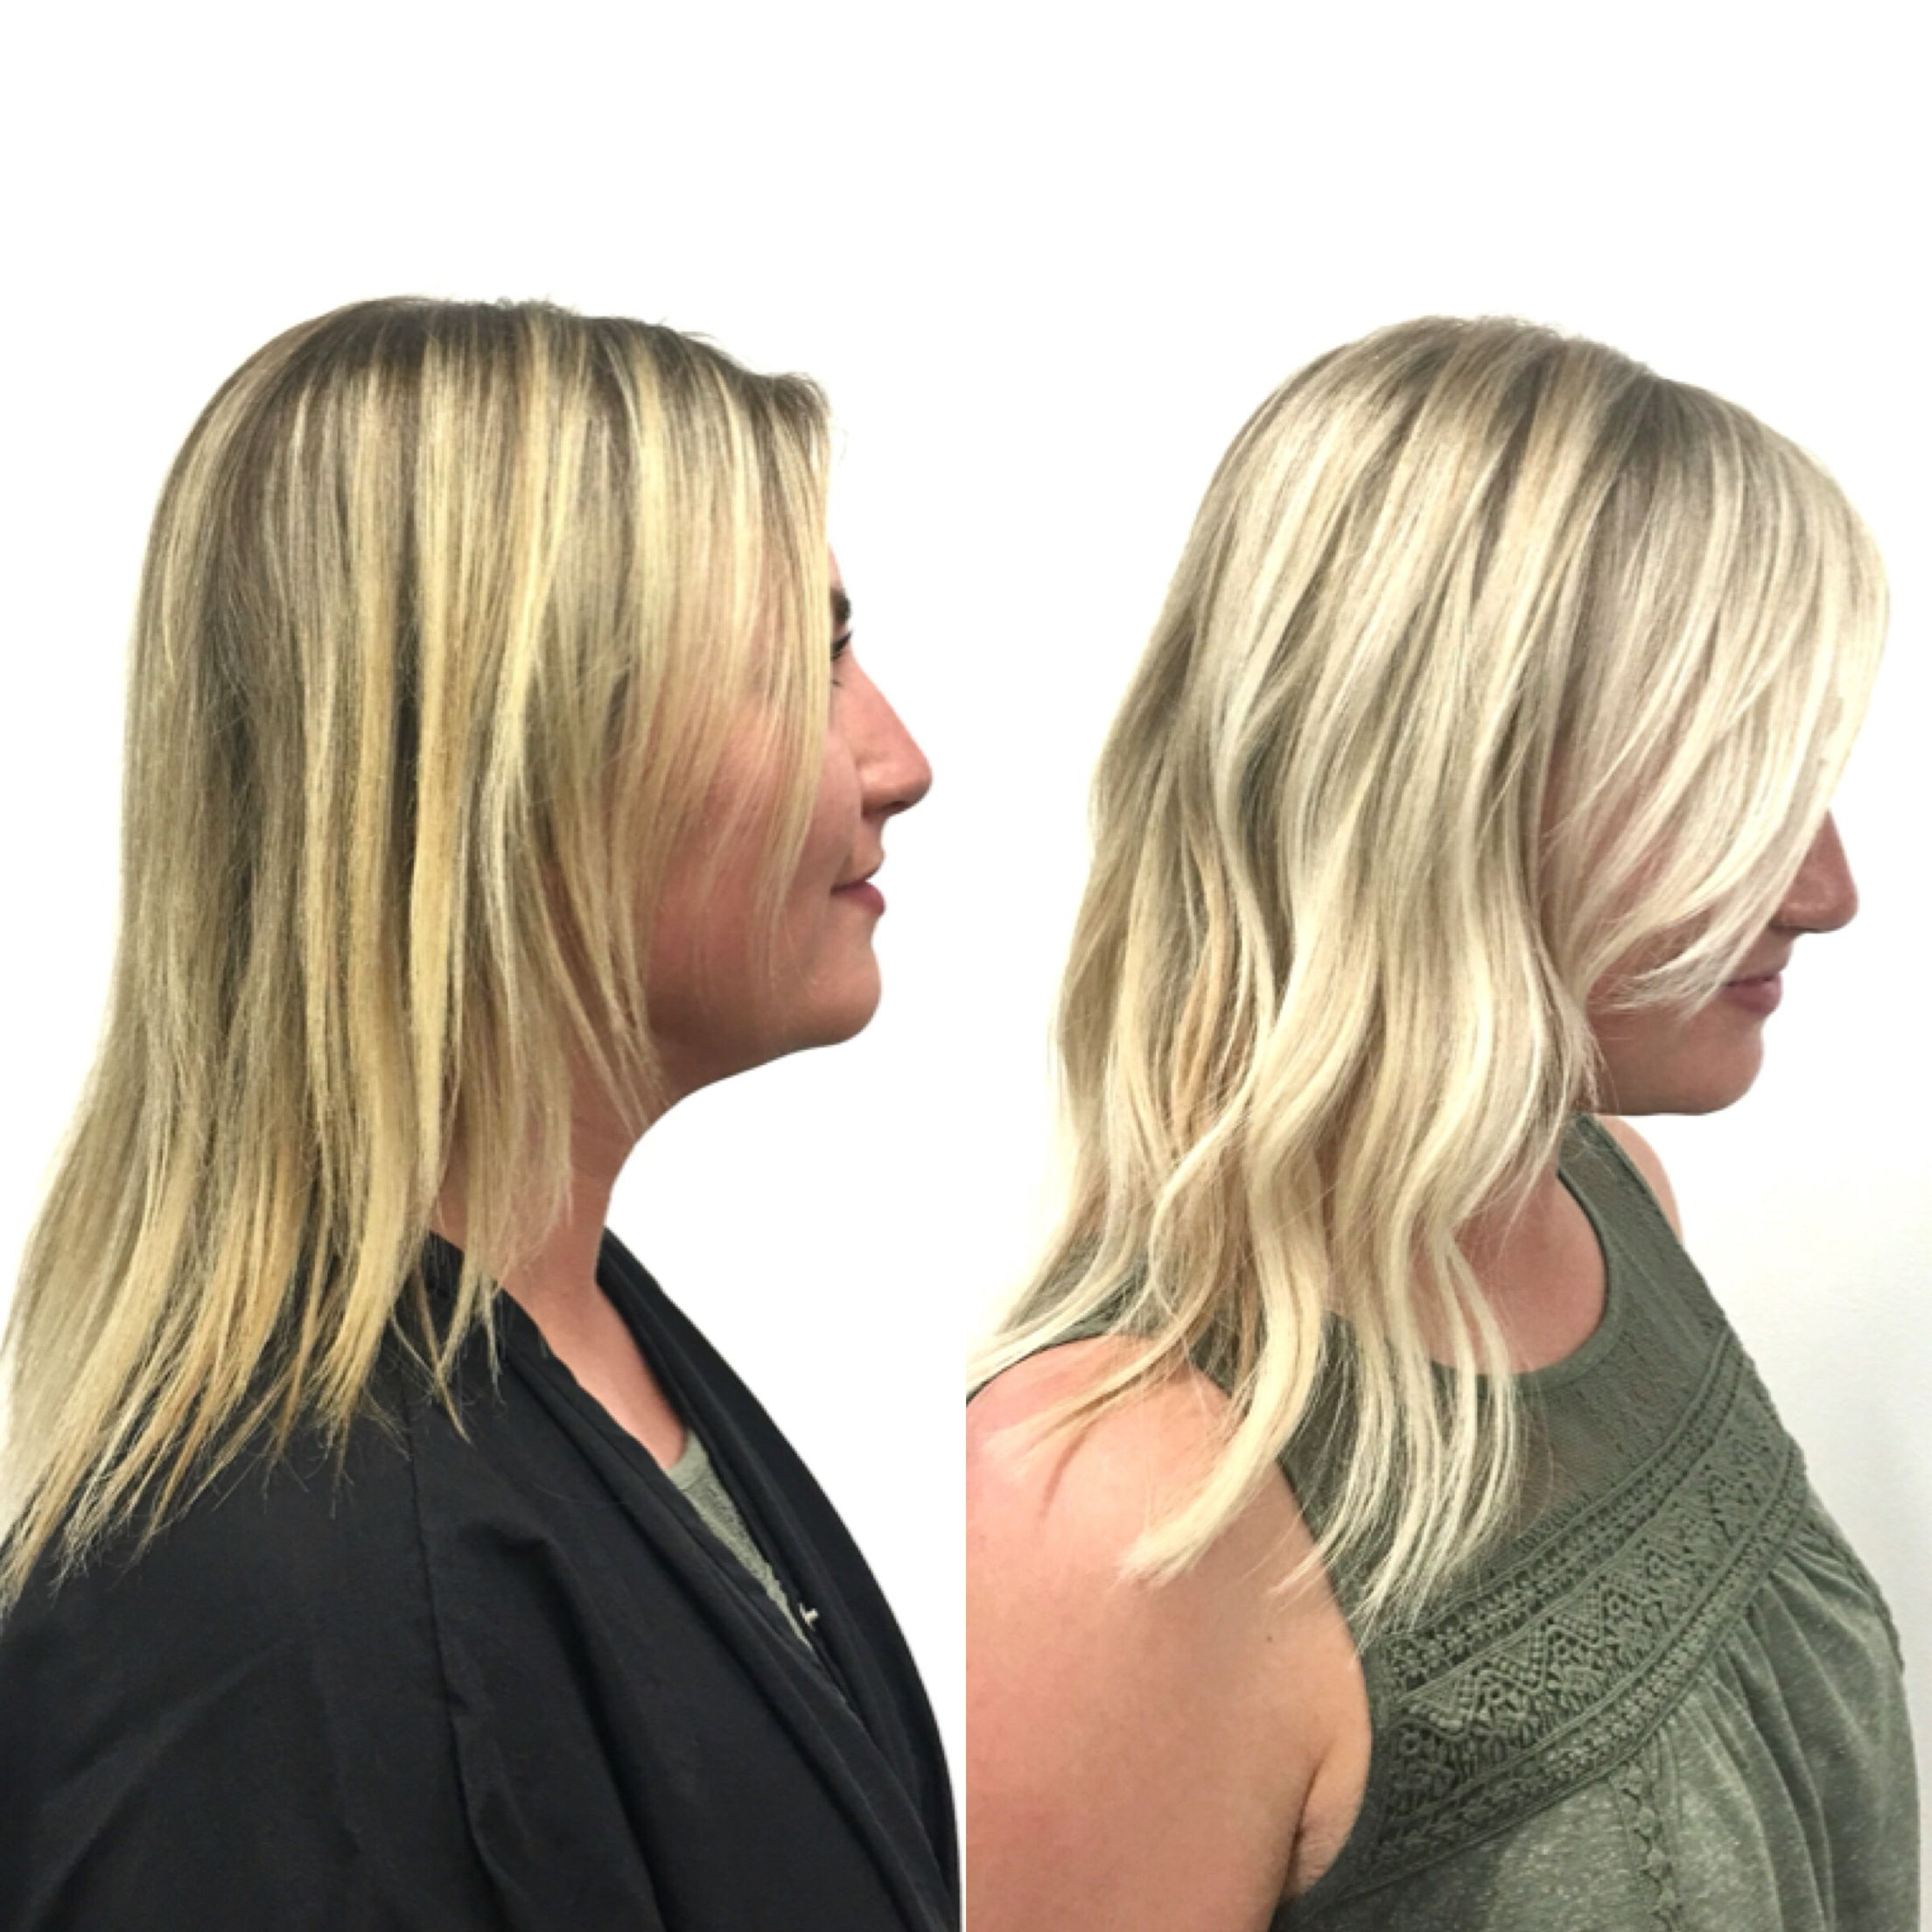 Before and after volume hair extensions by cassandra at salon before and after volume hair extensions by cassandra at salon entrenous lob finehair pmusecretfo Image collections